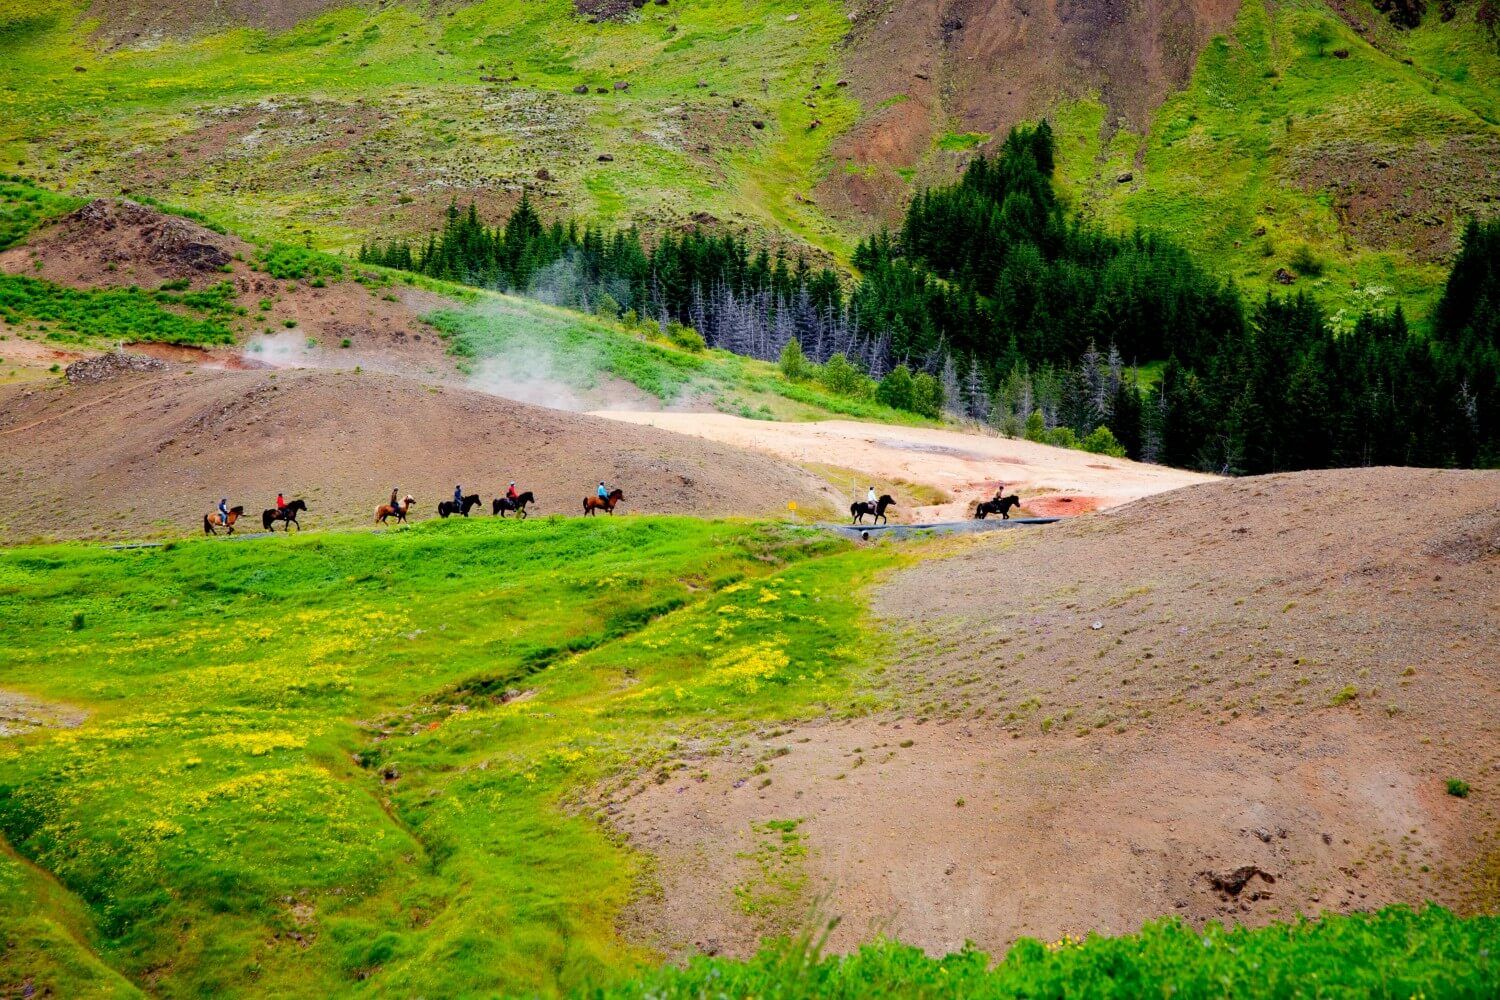 Icelandic horses travelling through Reykjadalur Valley.